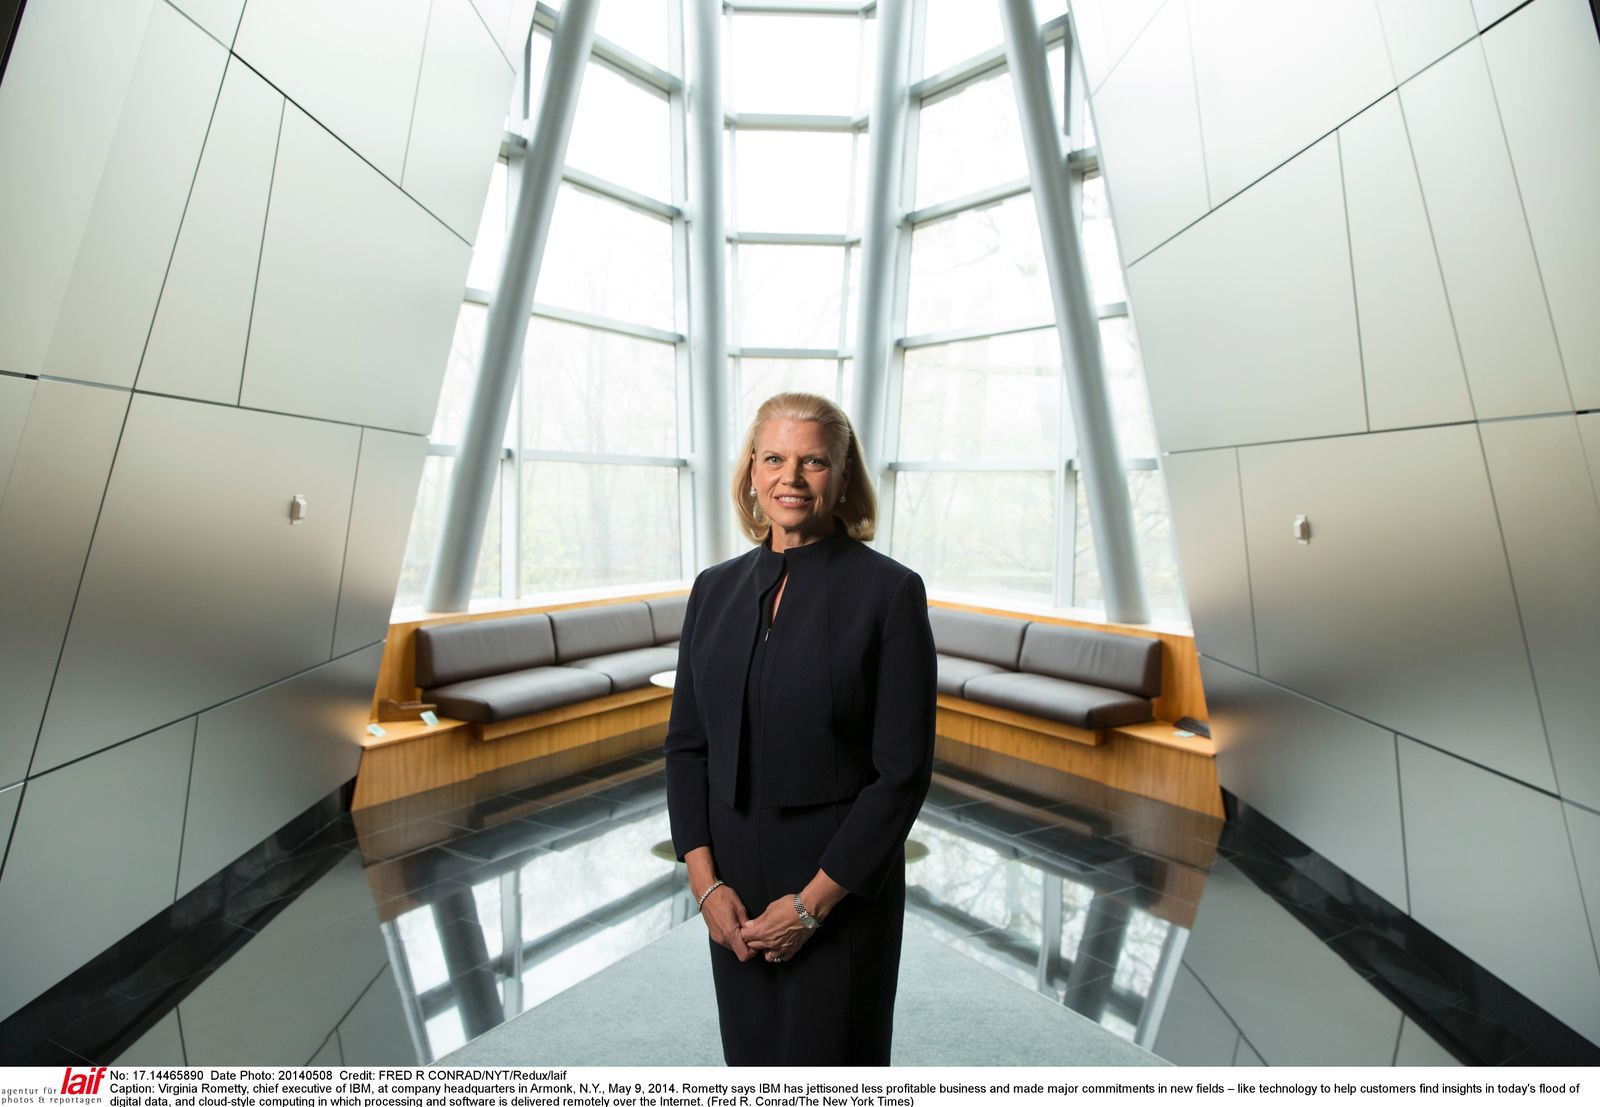 Virginia Rometty, chief executive of IBM, at company headquarters in Armonk, N.Y.